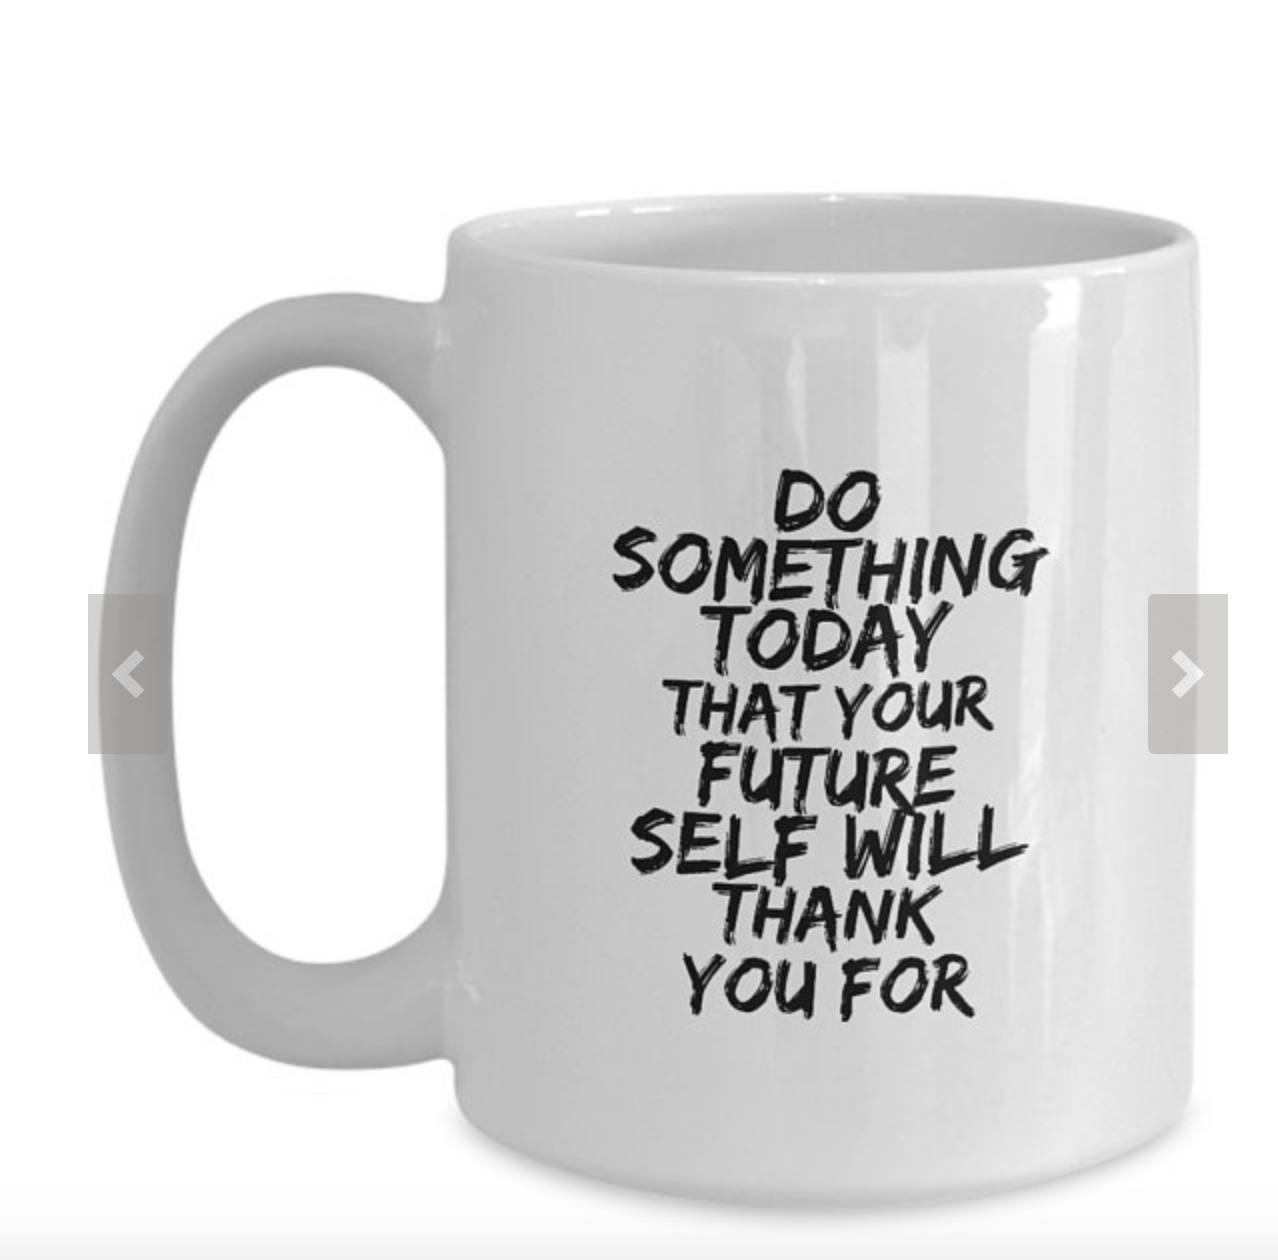 Do-something-today-mug